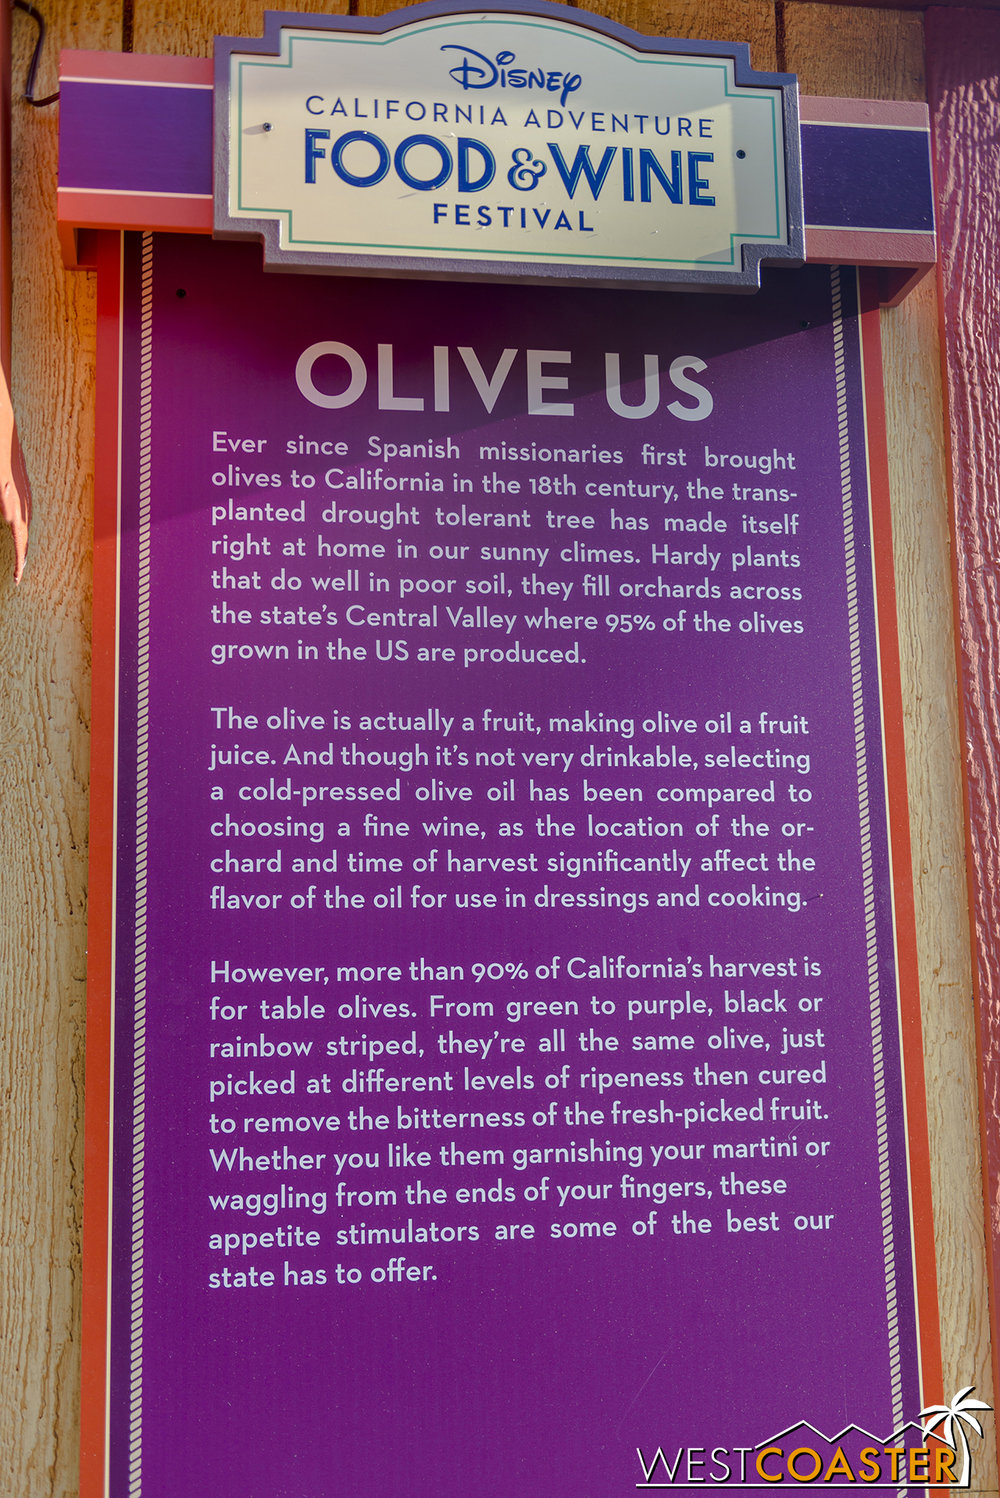 DLR-17_0314-H-Descriptions-06-OliveUs.jpg